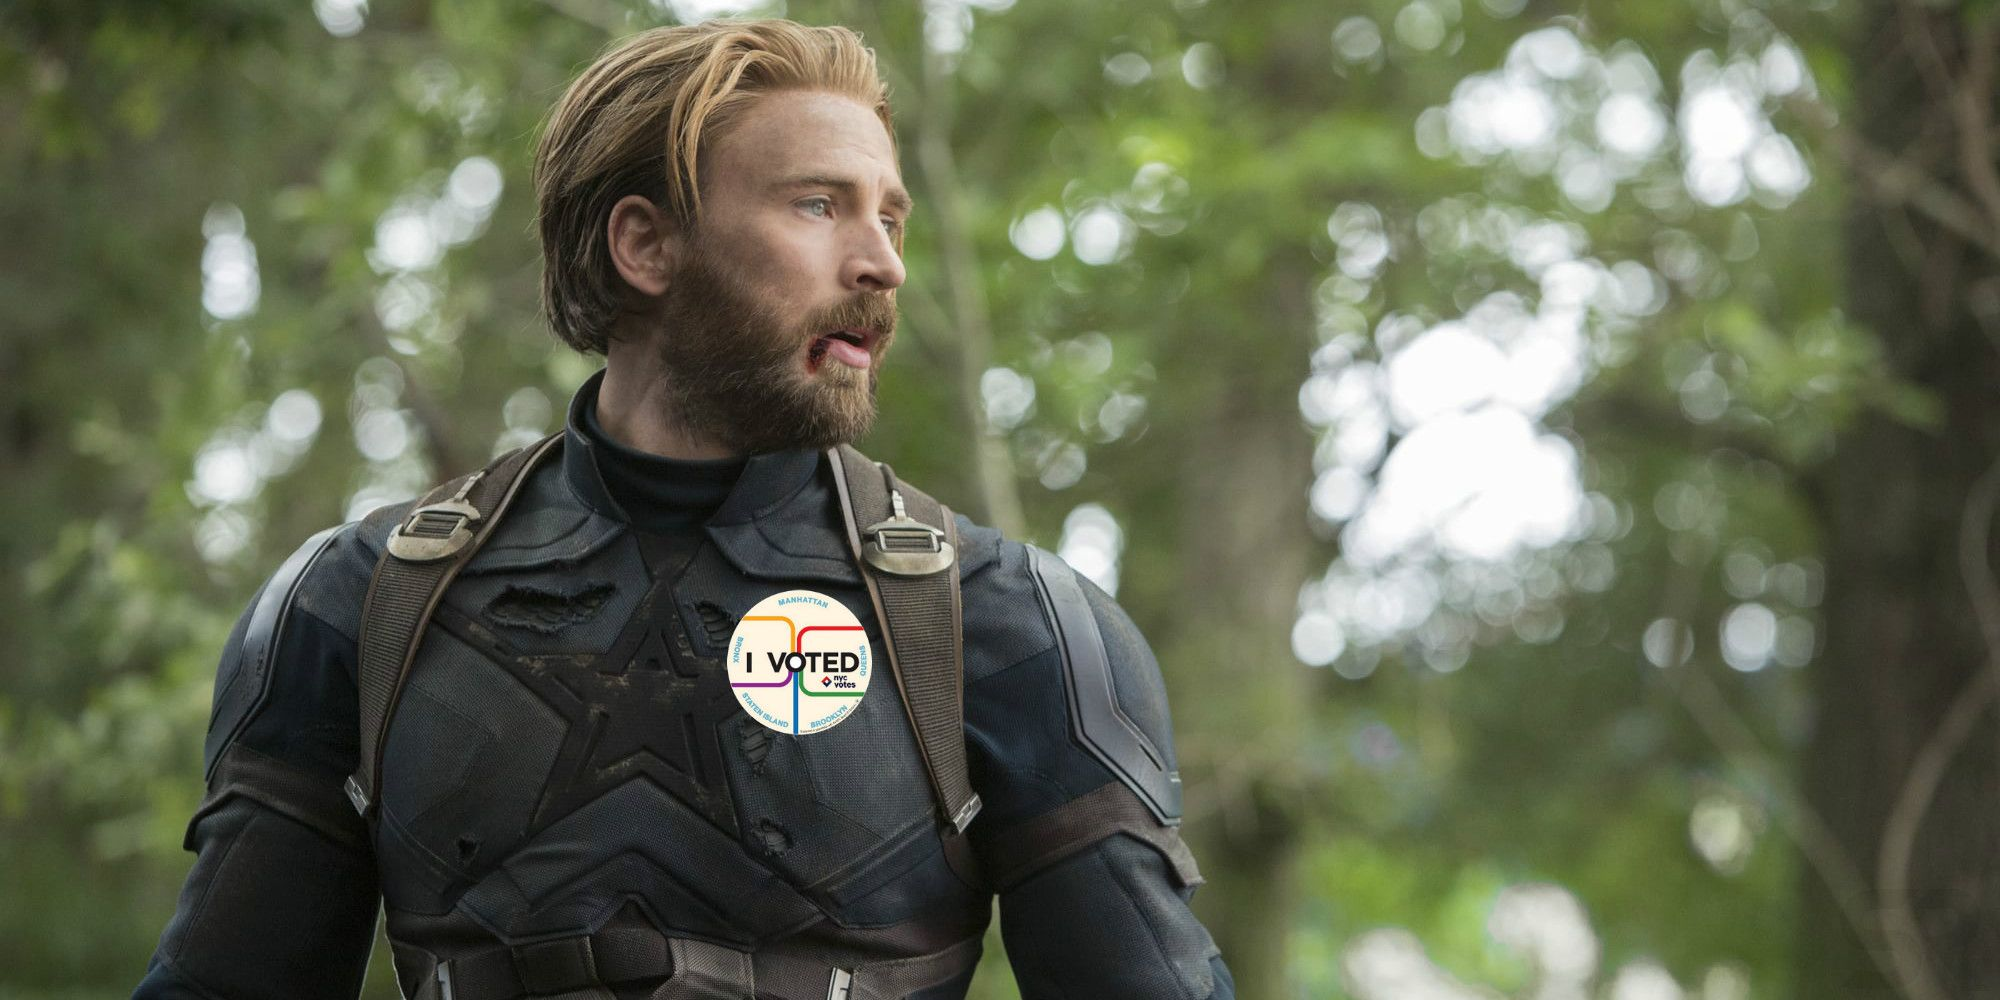 Avengers 4 Fan Has Great Idea For How Marvel Can Boost Voter Turnout